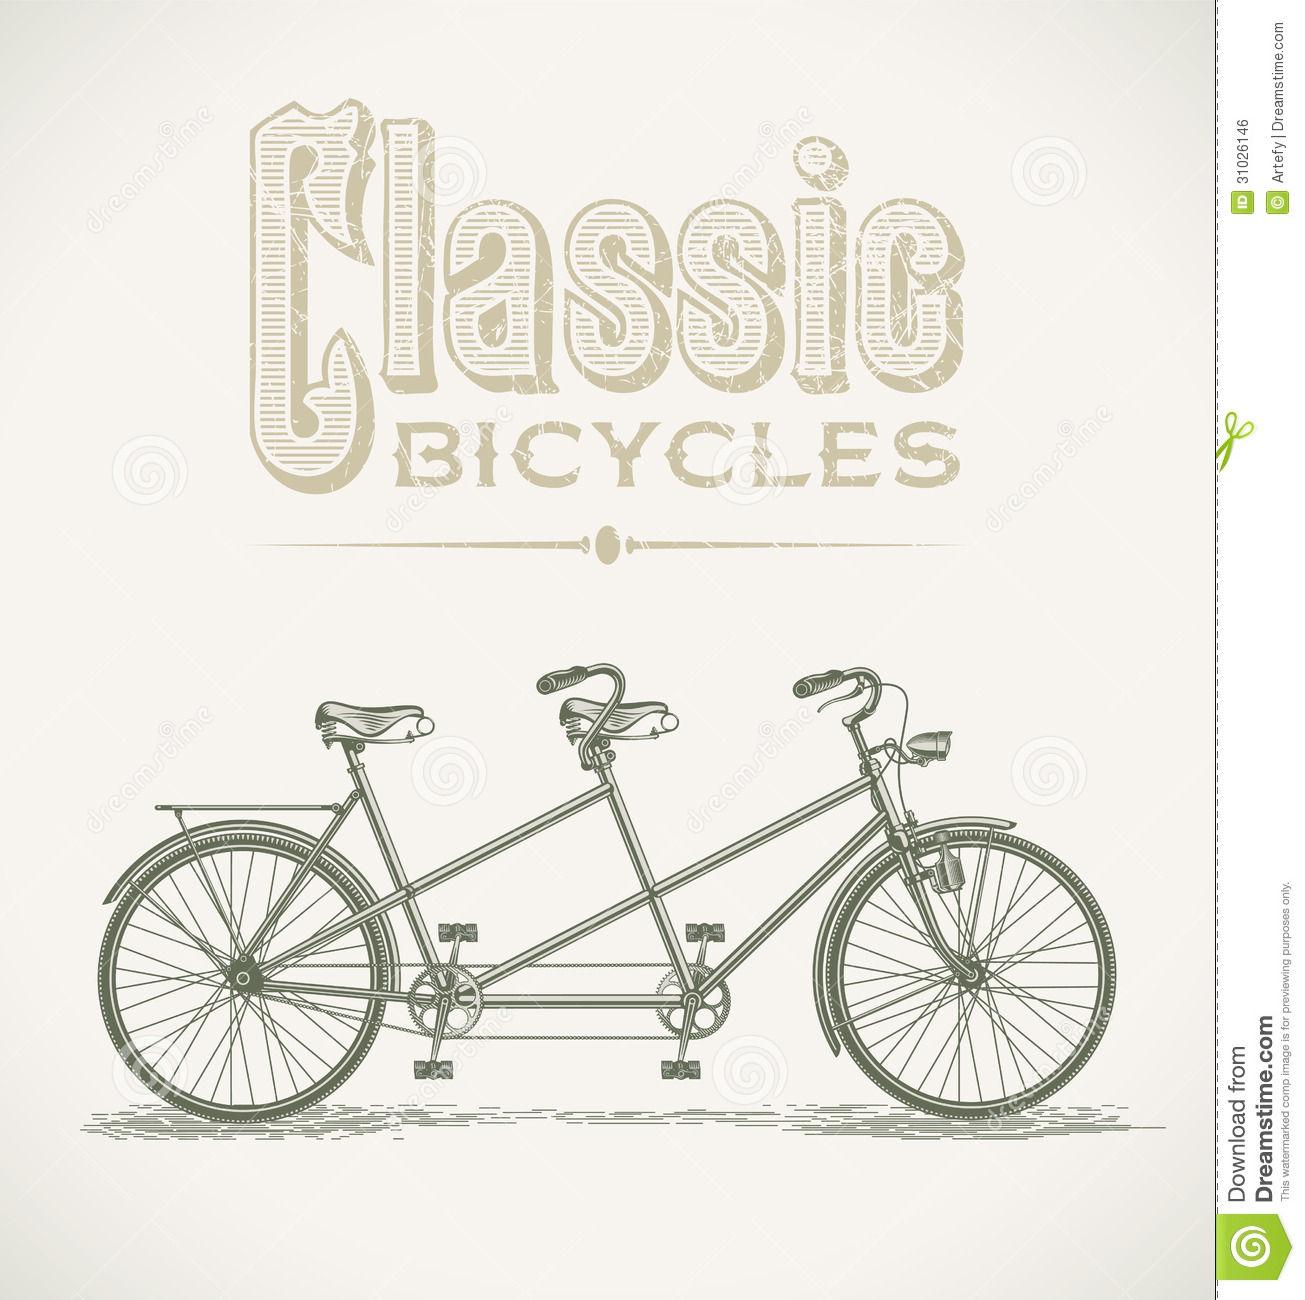 ... illustration with a classic tandem bicycle. Editable layered vector